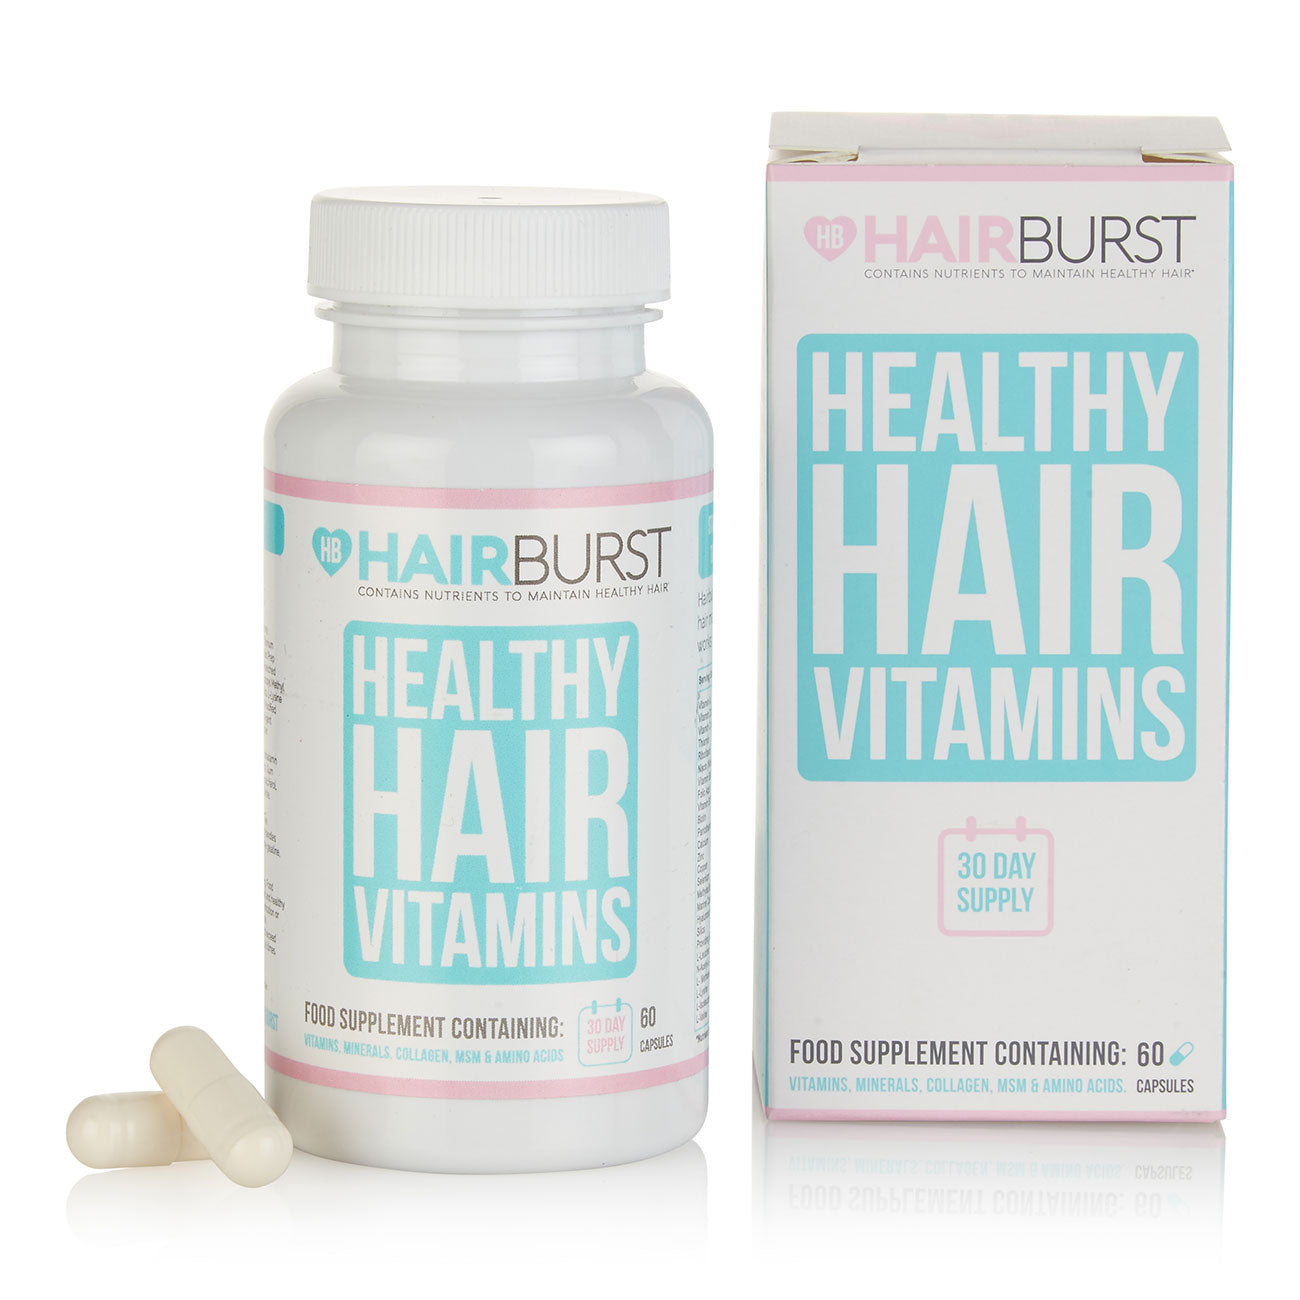 Hairburst Healthy Hair Vitamins 60 Capsules (30 day supply)